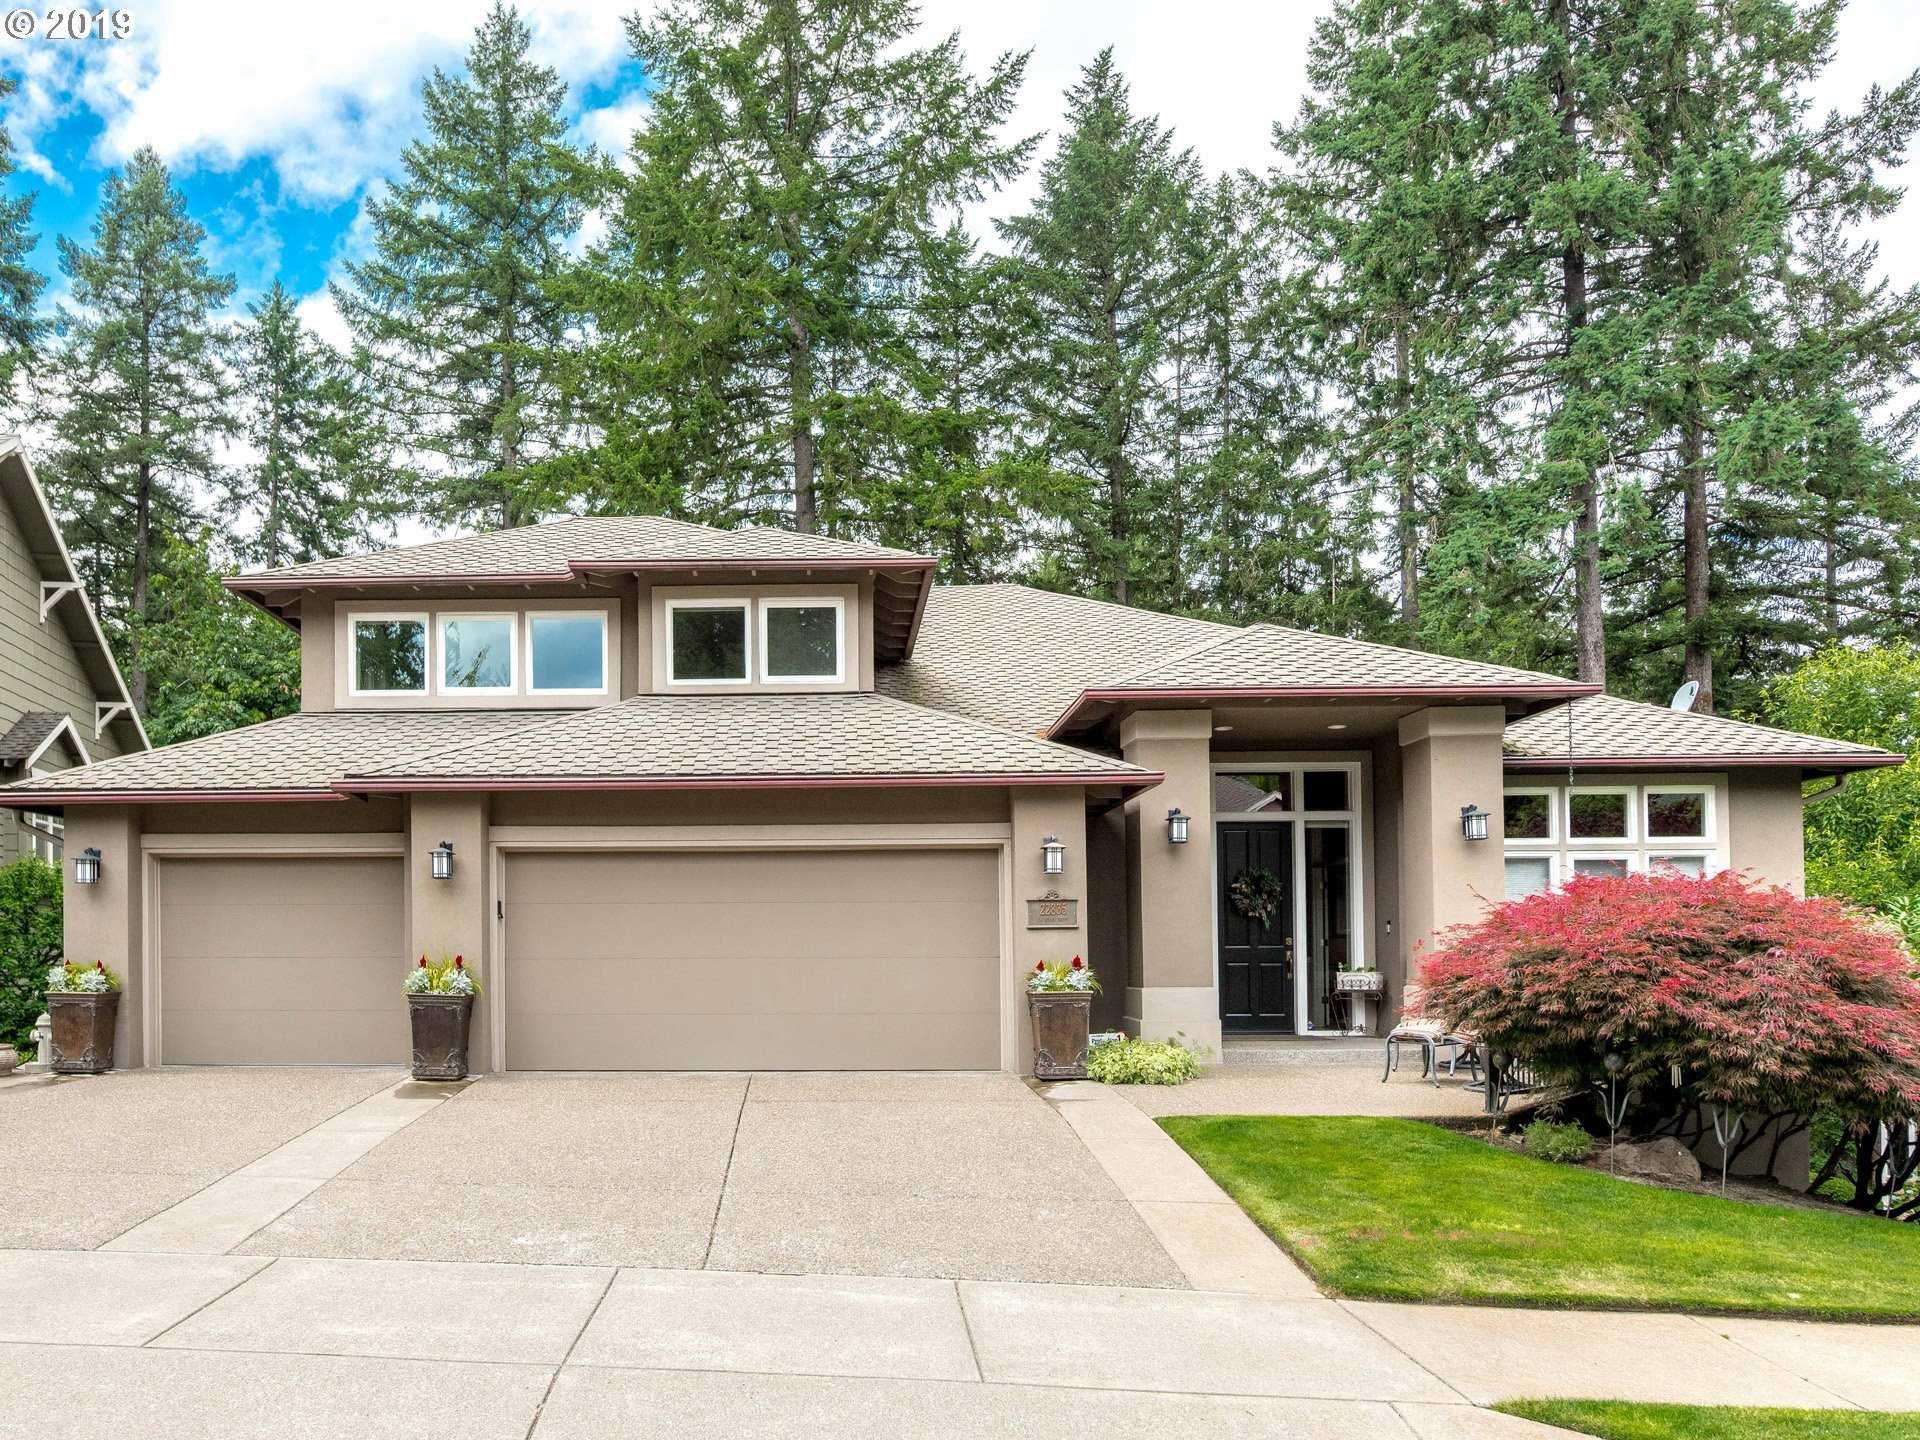 $824,900 - 4Br/3Ba -  for Sale in Victoria Woods, Tualatin